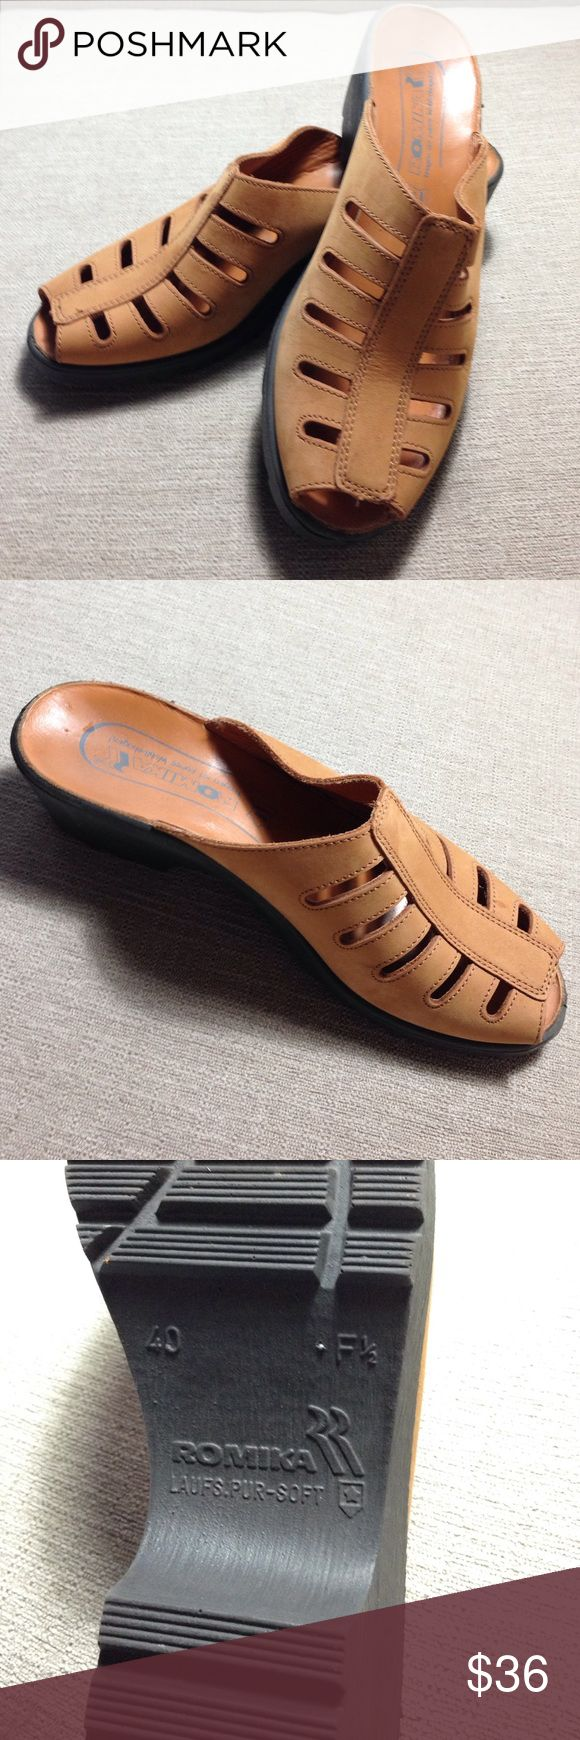 ❗️SALE❗️Romika tan suede sandals Romika tan suede sandals. Open-toed Romika Shoes Sandals